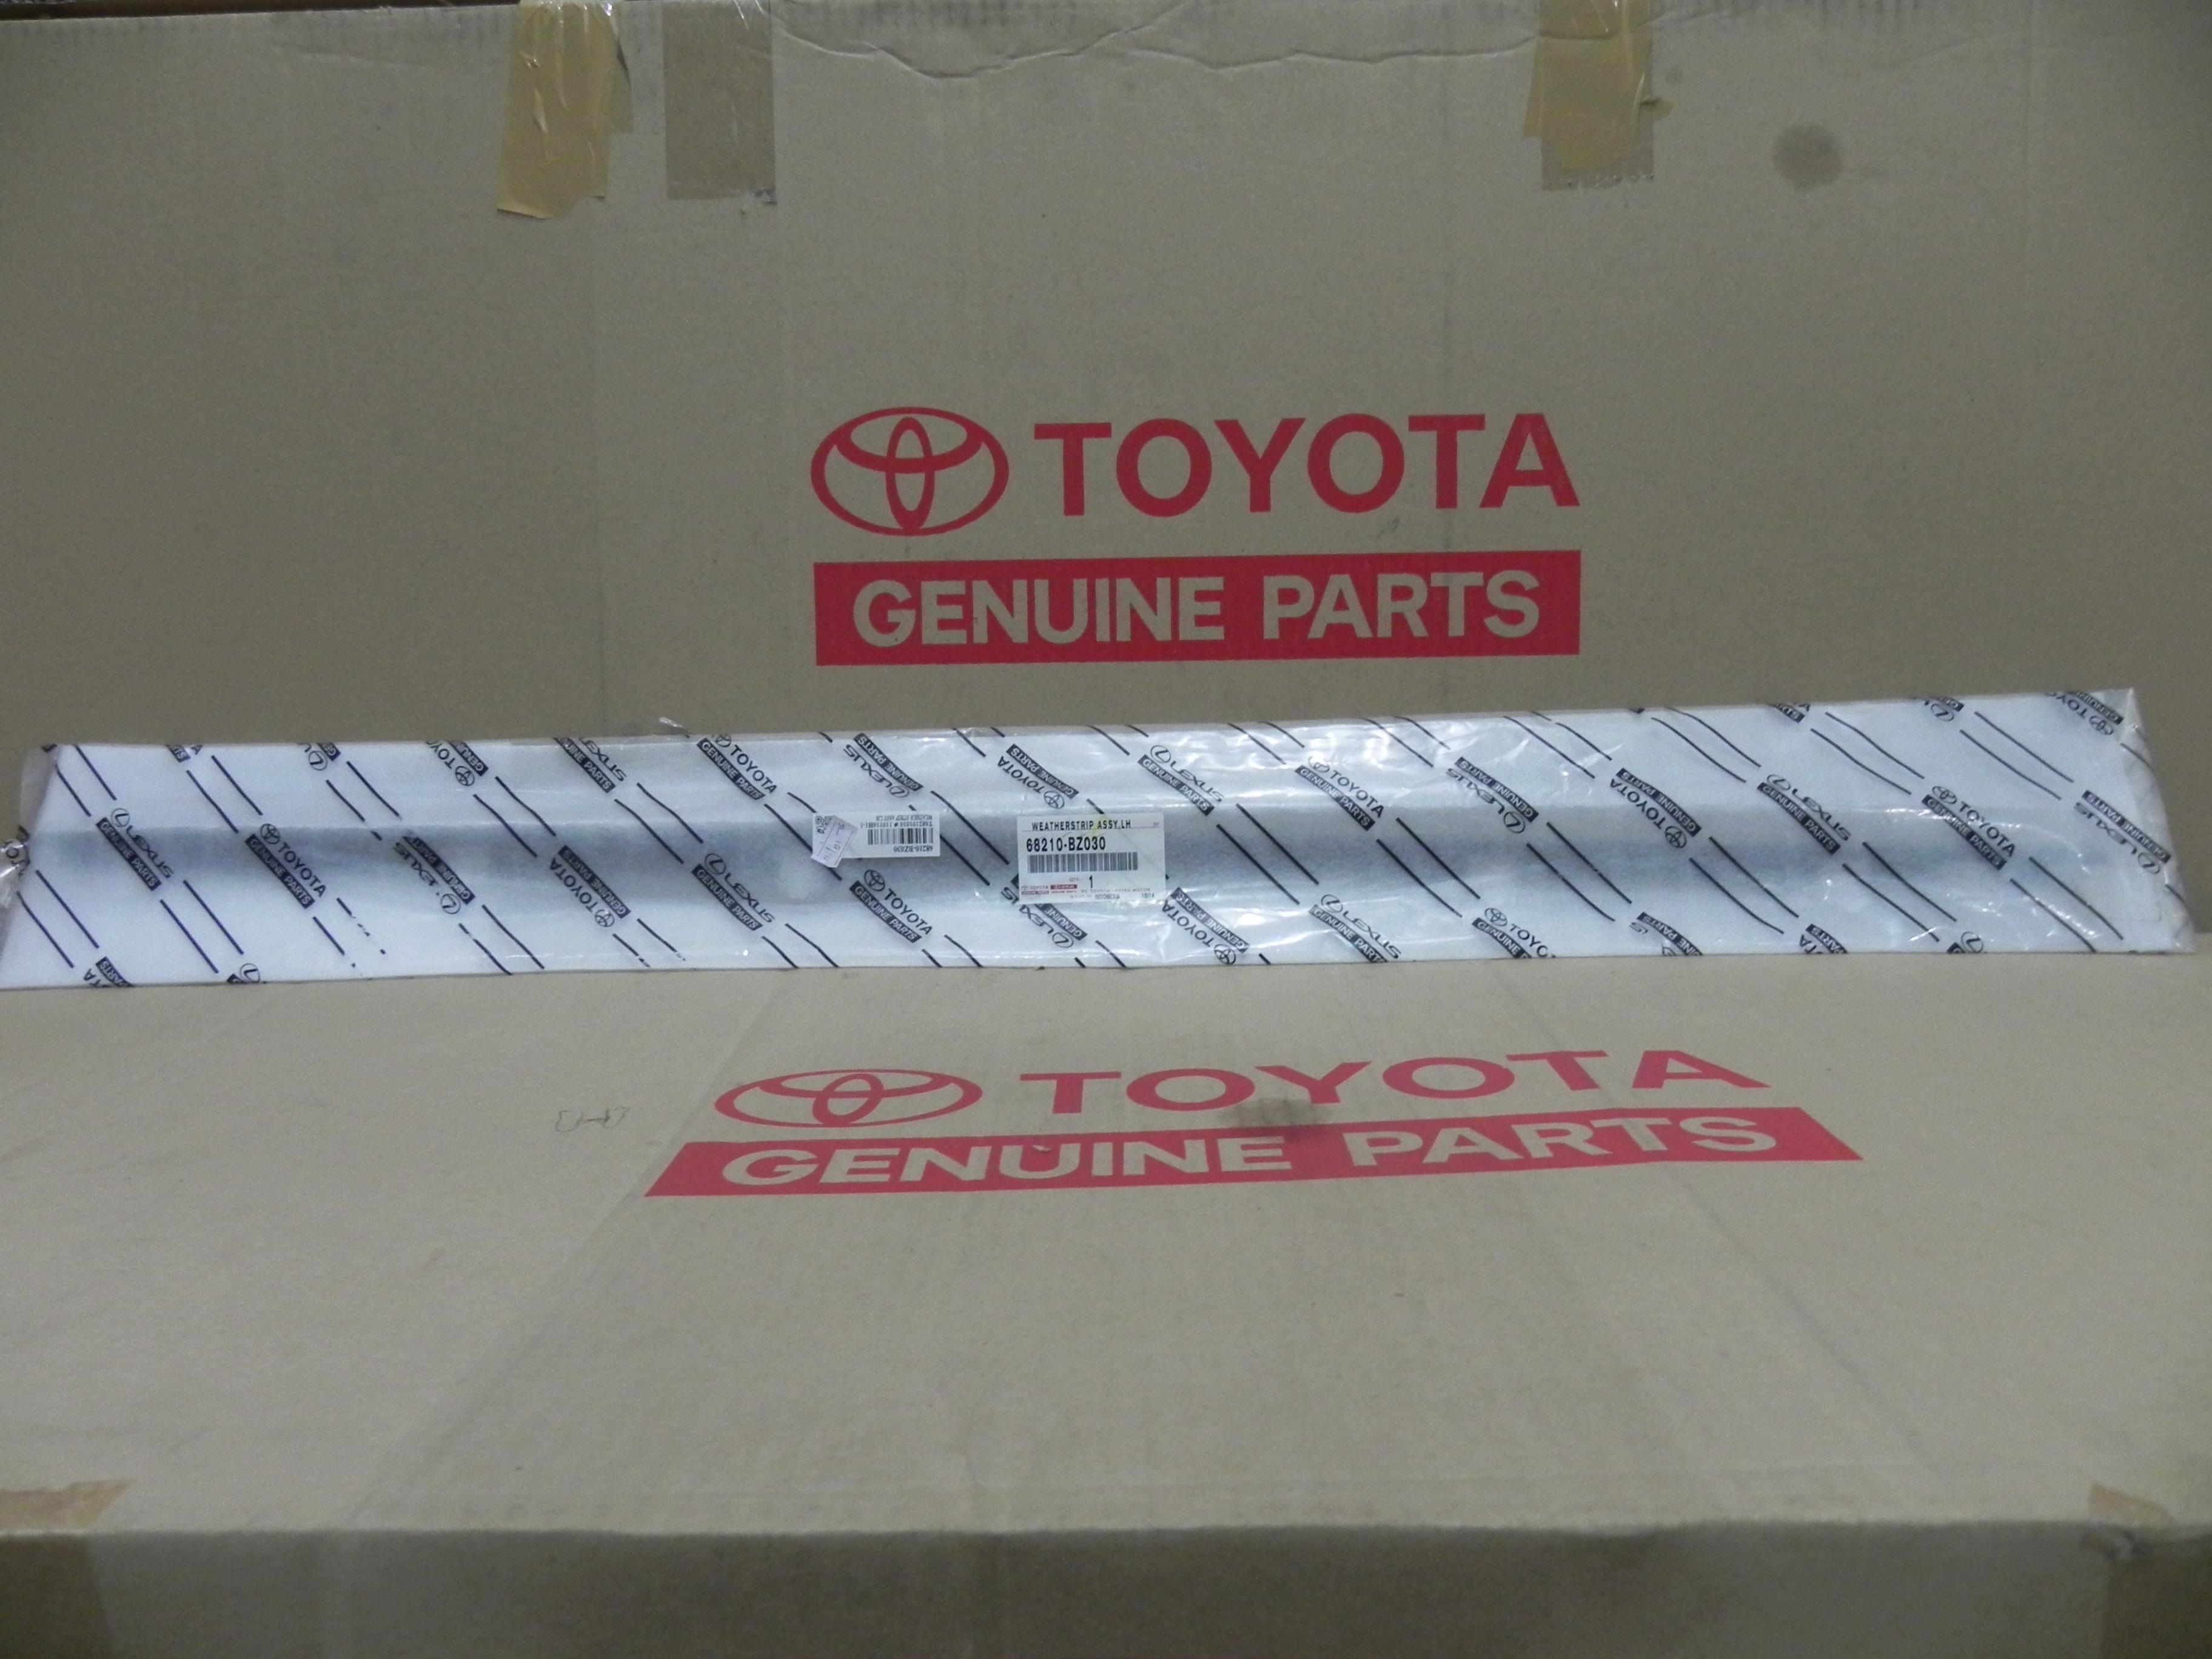 Sell HERSTRIP ASSY LH 68210 BZ030 From Indonesia By PT Saga Toyota PartCheap Price